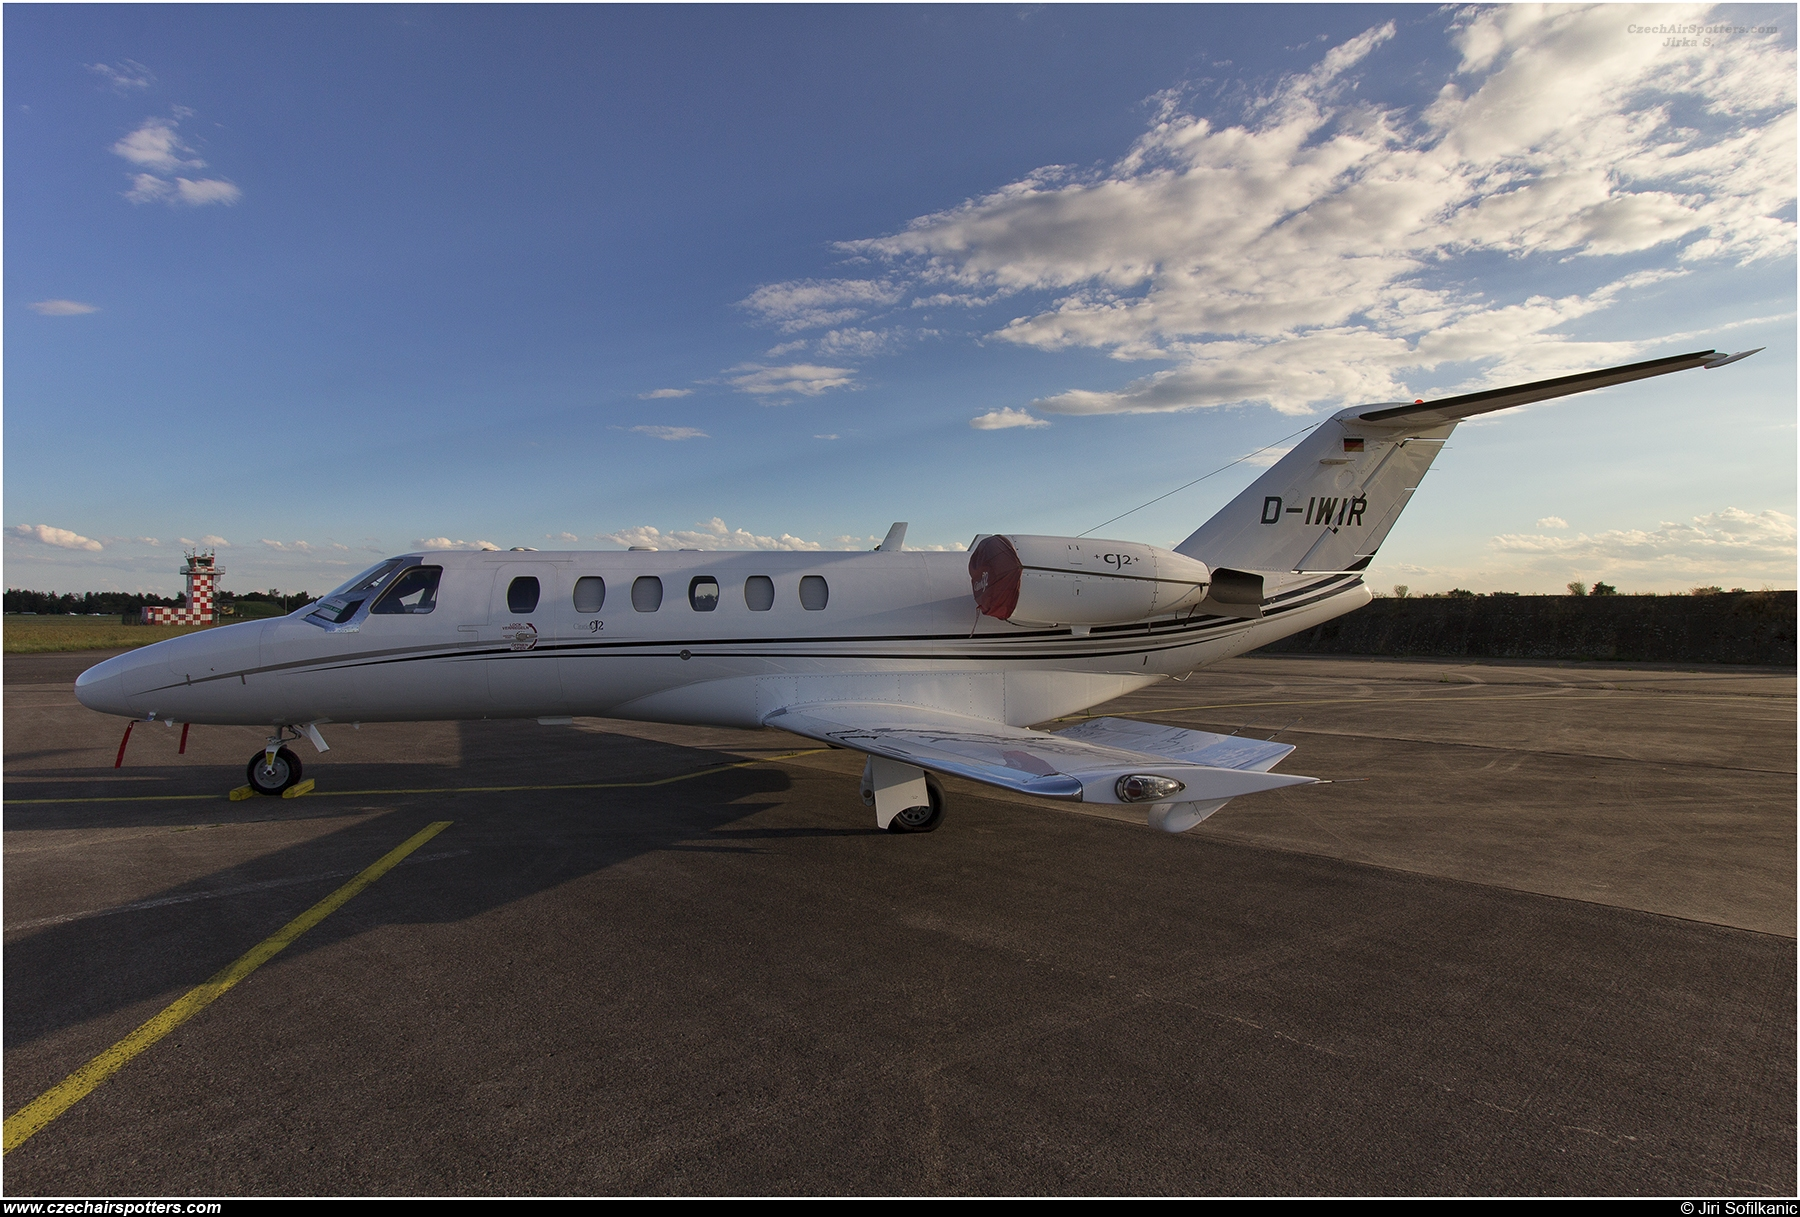 Oldenburg Kunststofftechnik – Cessna 525A Citation Jet 2+ D-IWIR